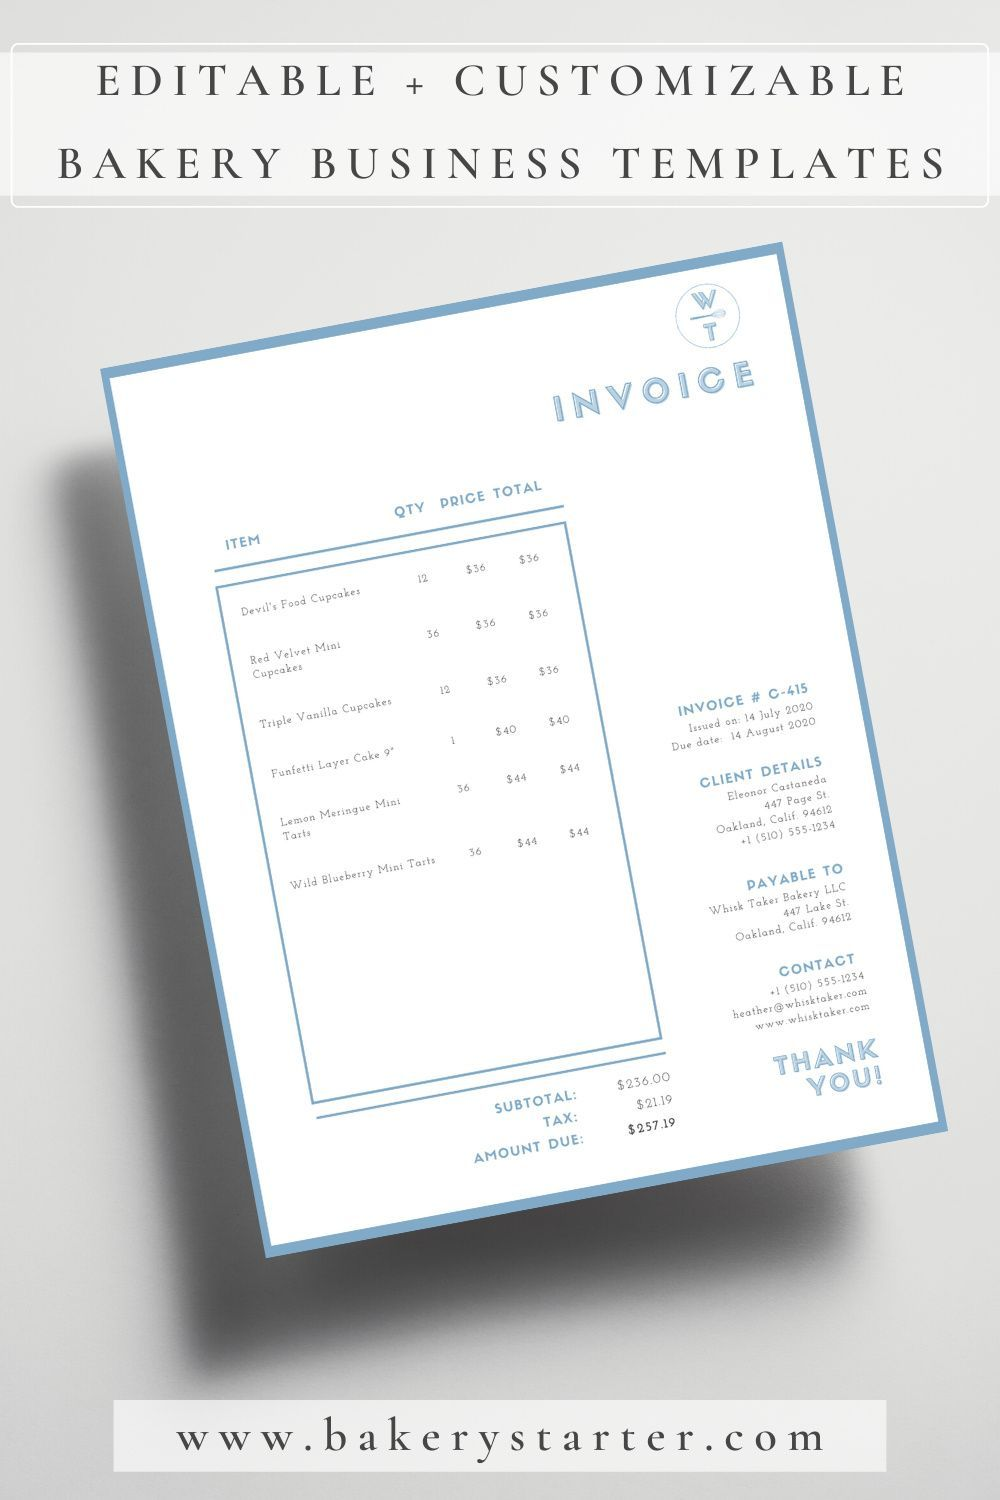 Editable Small Business Invoice Template Templates Cookie Business Home Bakery Business